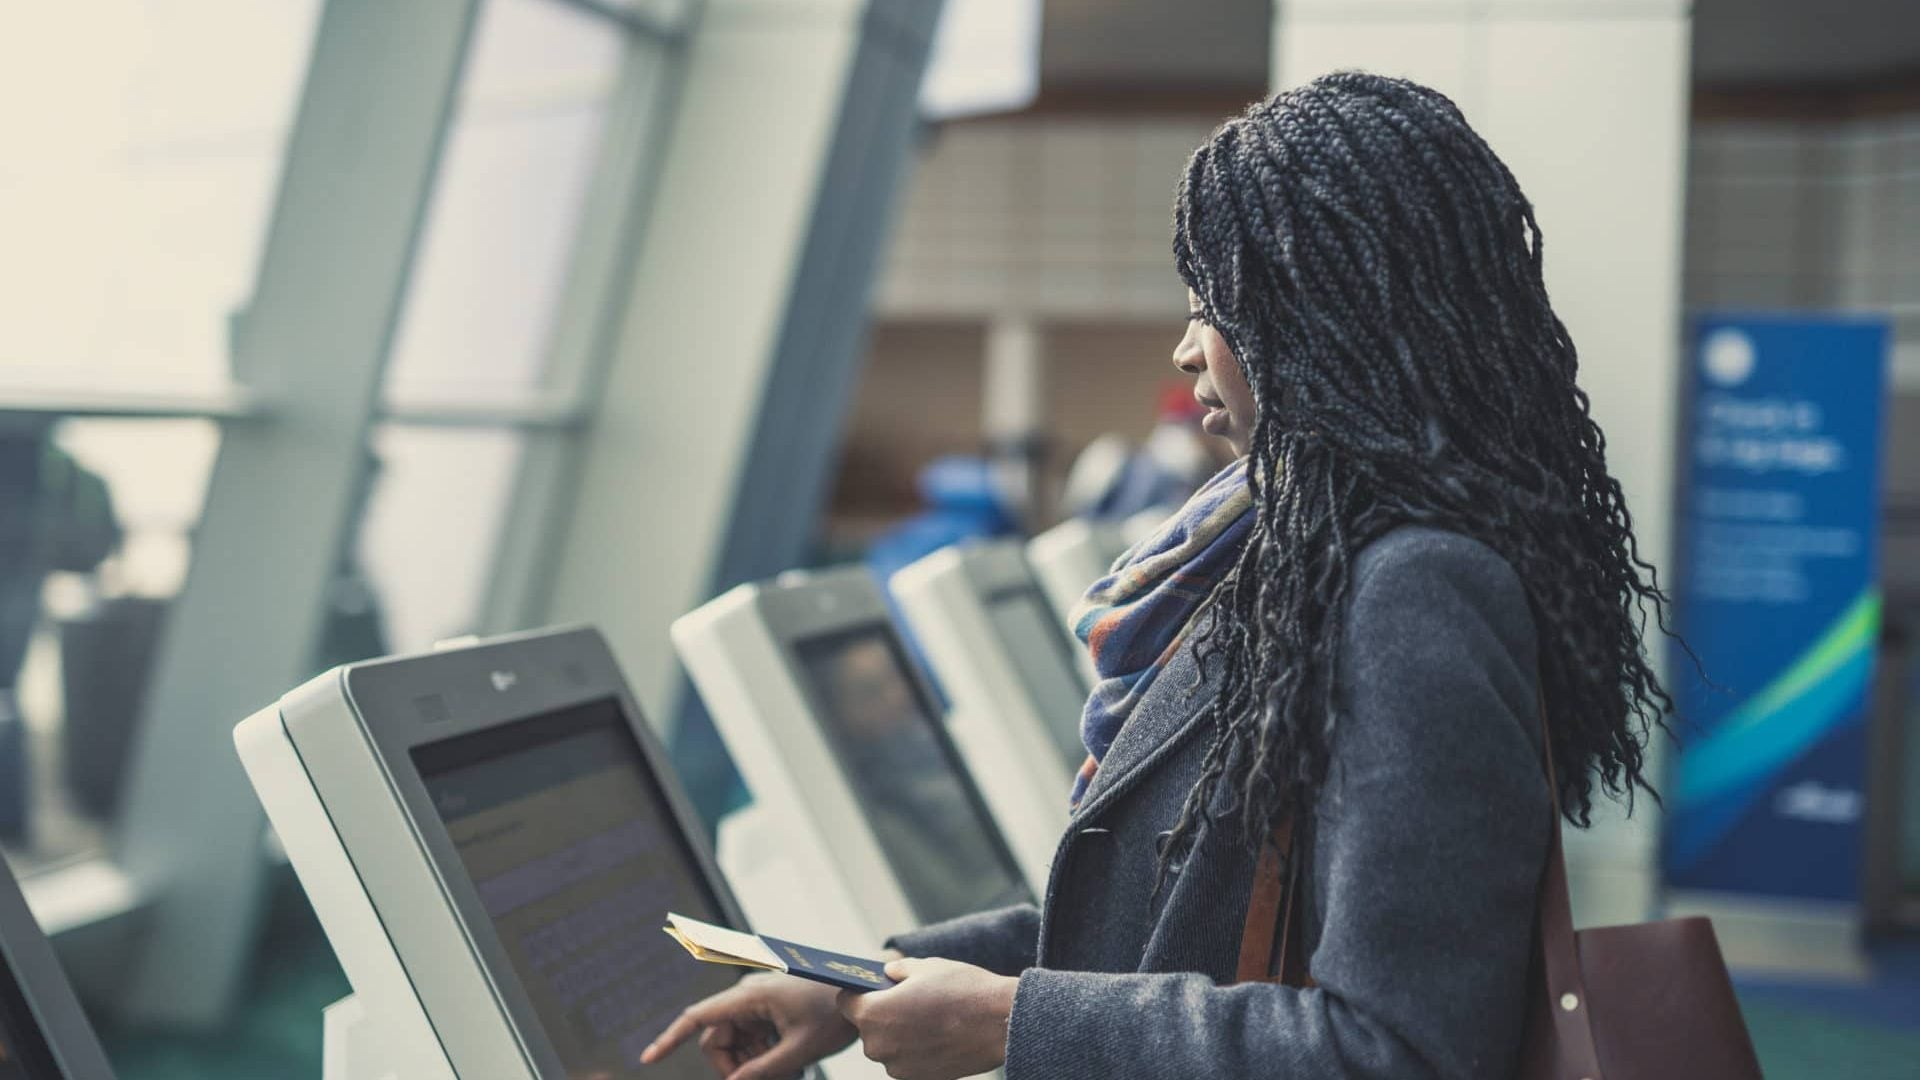 TSA Body Scanners More Likely To Give False Alarms For Black Hairstyles